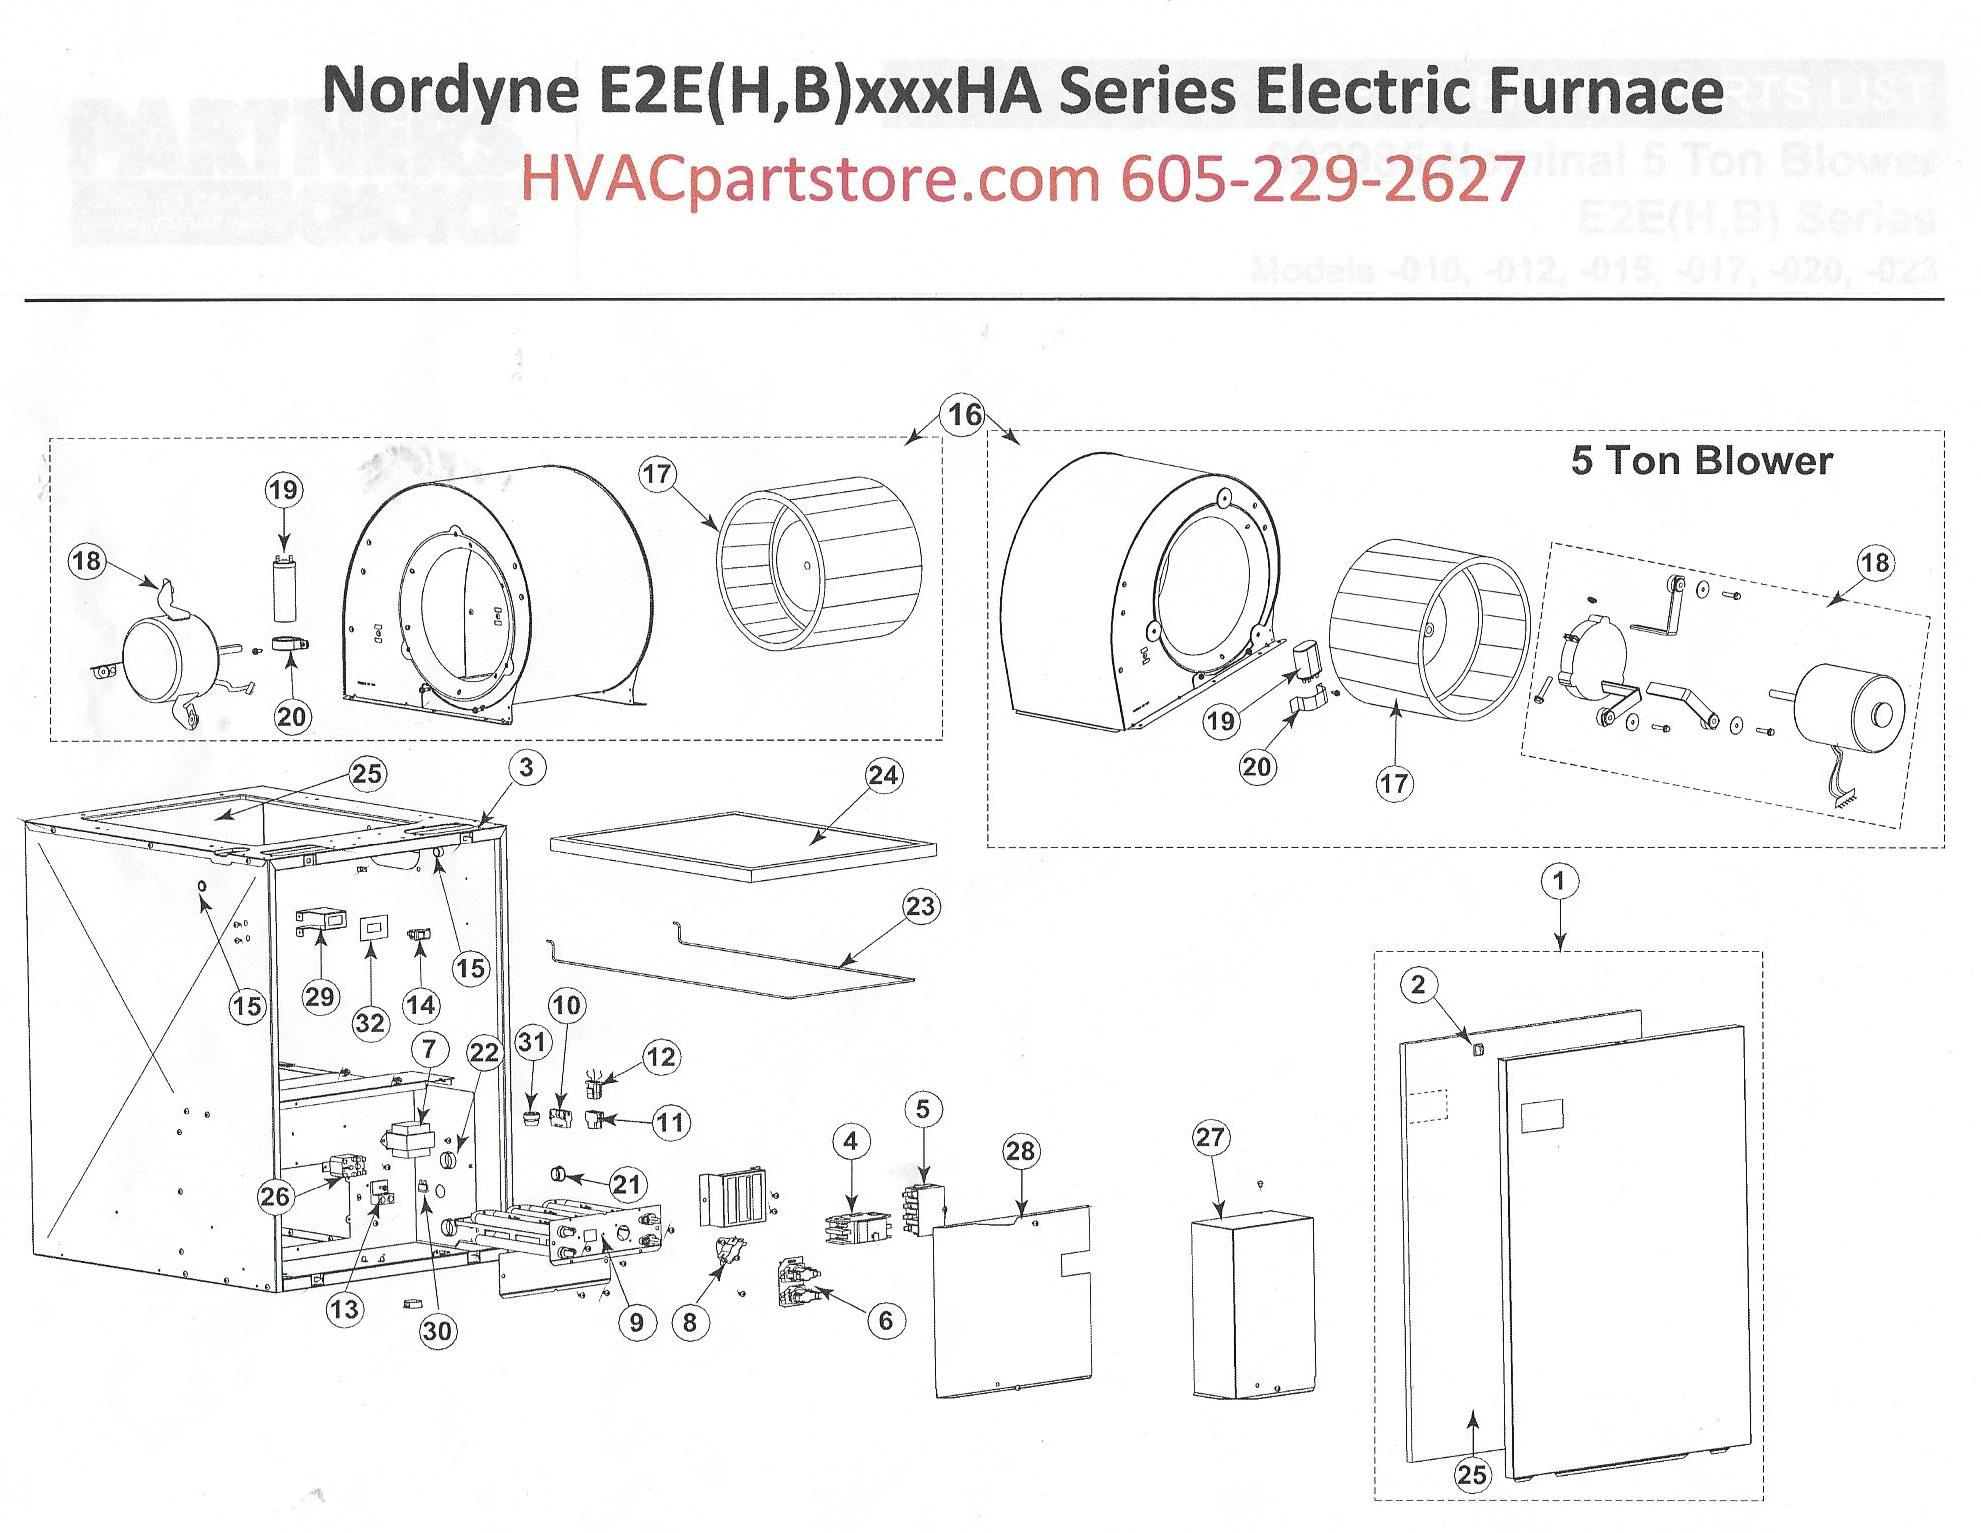 E2HADiagram_f0f076ea fd94 4d7b 8e49 0d9e07172c60?14699803936429464575 e2eb012ha nordyne electric furnace parts hvacpartstore wiring diagram for intertherm electric furnace at pacquiaovsvargaslive.co